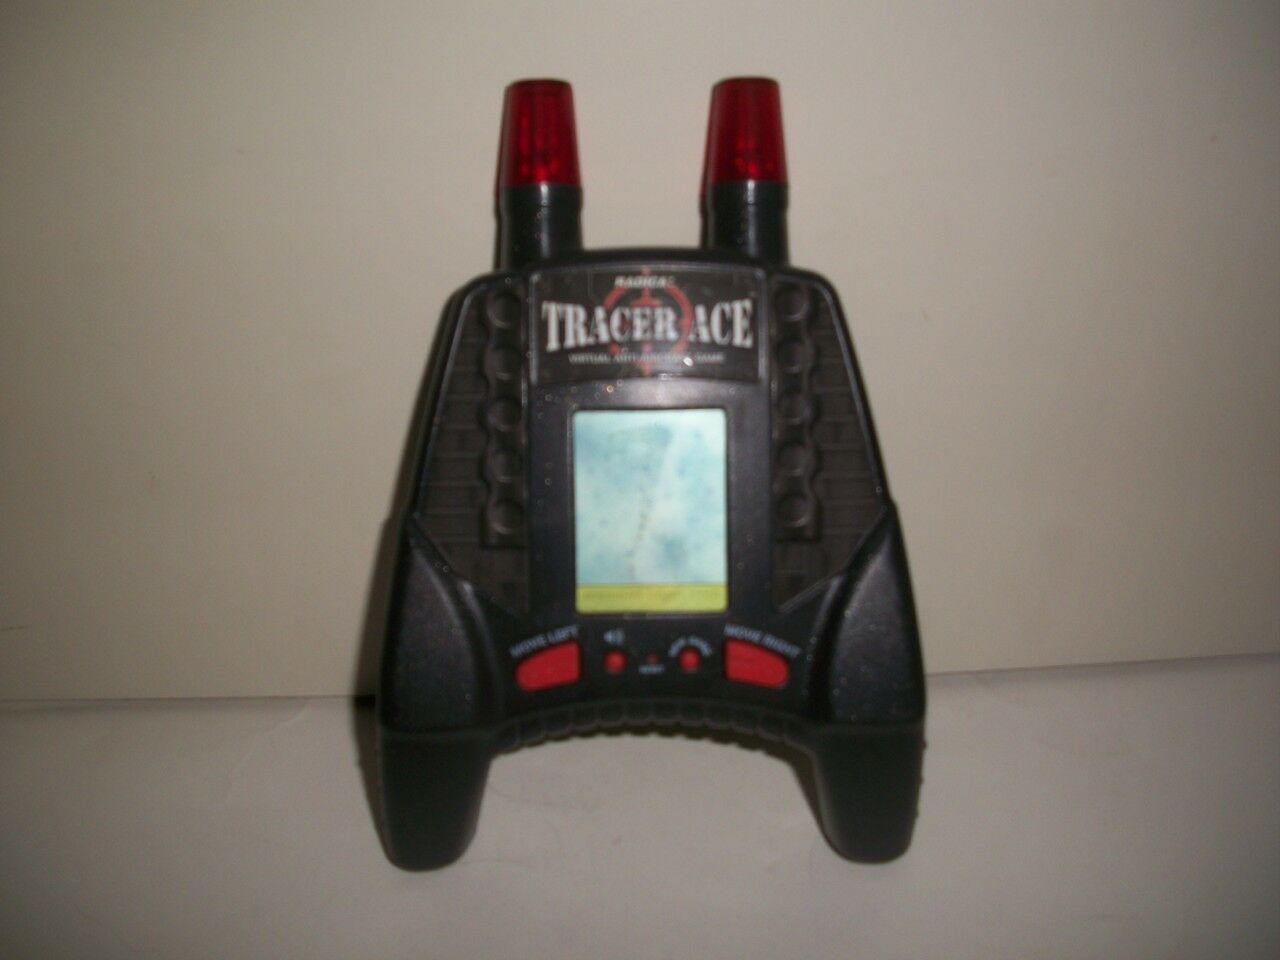 HANDHELD GAME, GAME, GAME, TRACER ACE-RADICA, VIRTUAL ANTI-AIRCRAFT, MOTION SENSOR, 1998 c5f84d